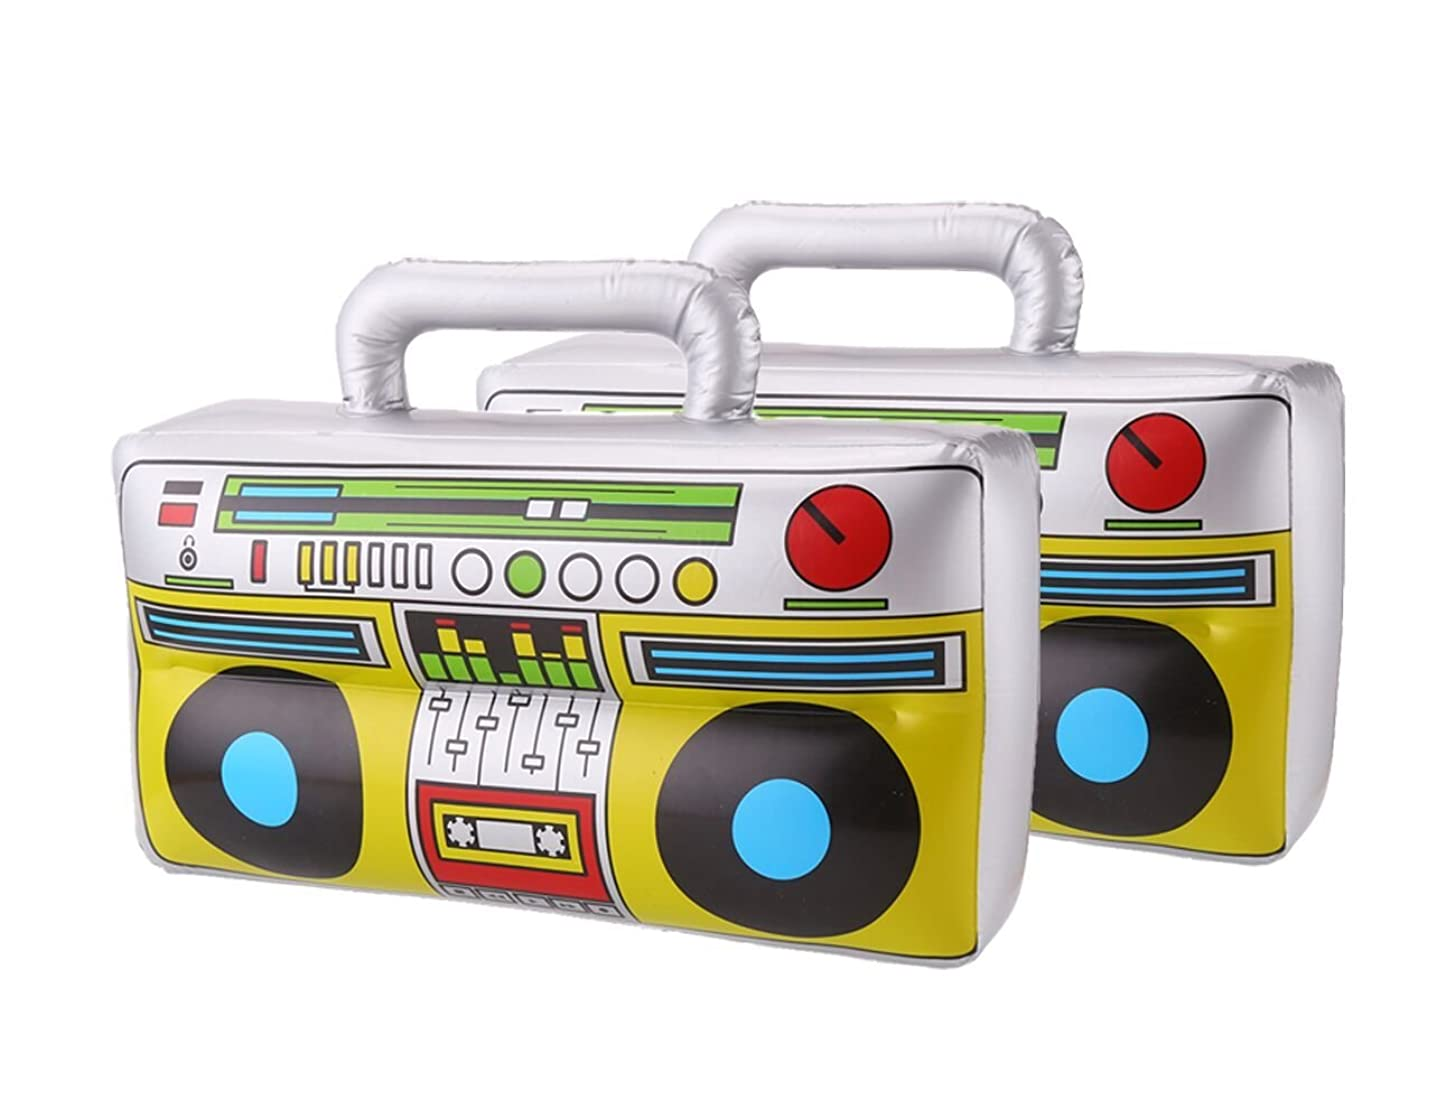 DECORA 16 inch Novelty Inflatable Boombox for 80s 90s Party Decoration, Silver, Pack of 2